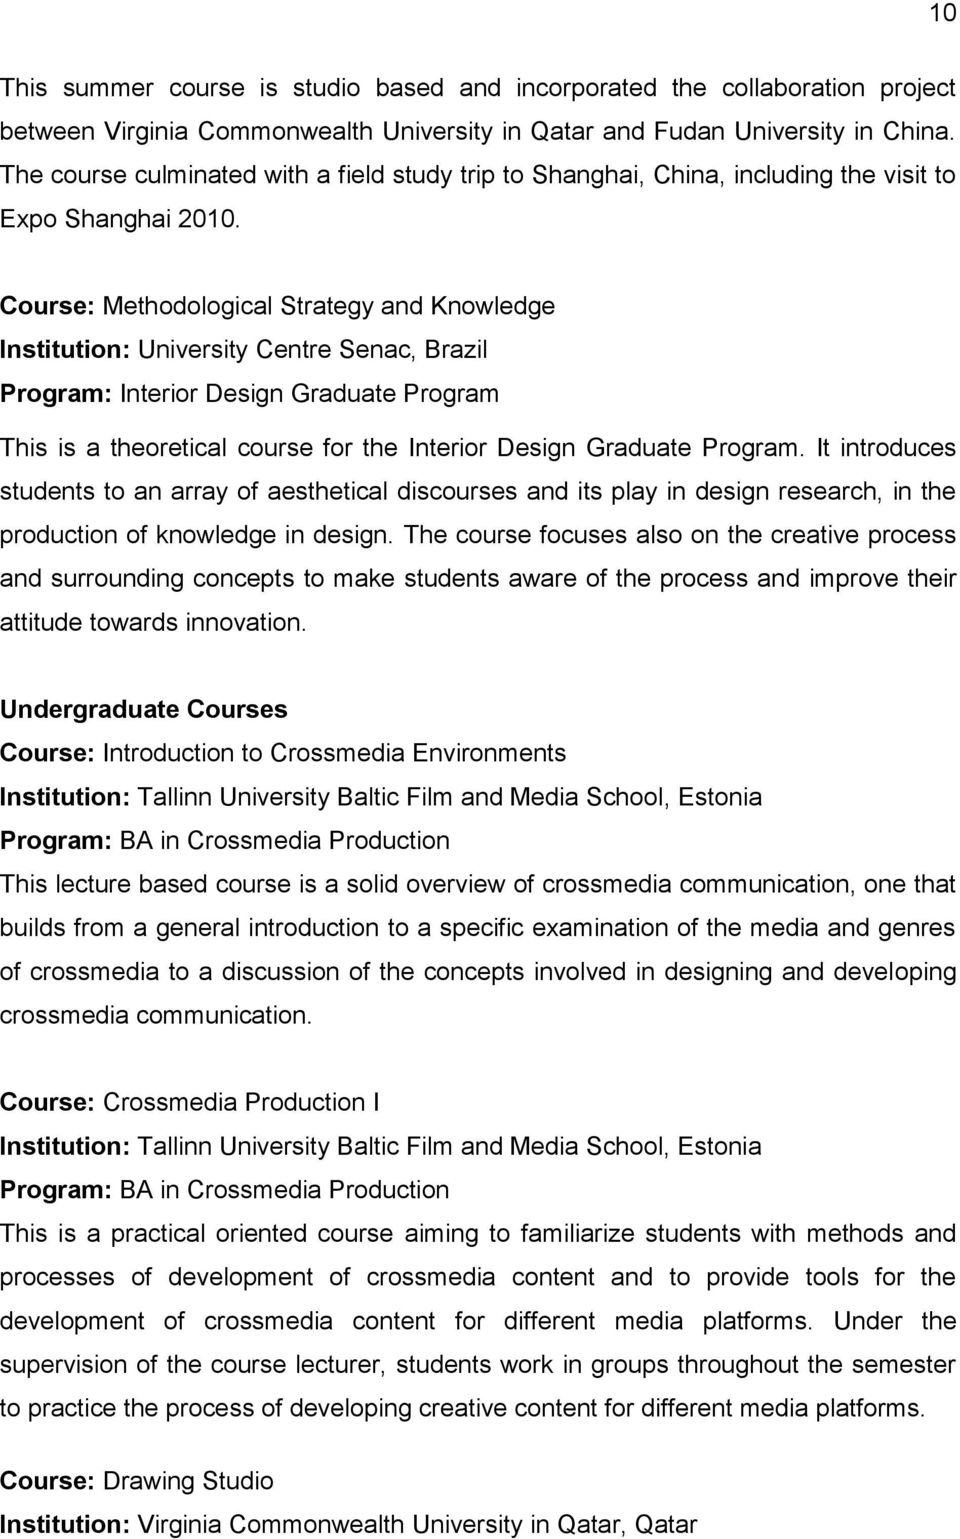 Course: Methodological Strategy and Knowledge Institution: University Centre Senac, Brazil Program: Interior Design Graduate Program This is a theoretical course for the Interior Design Graduate